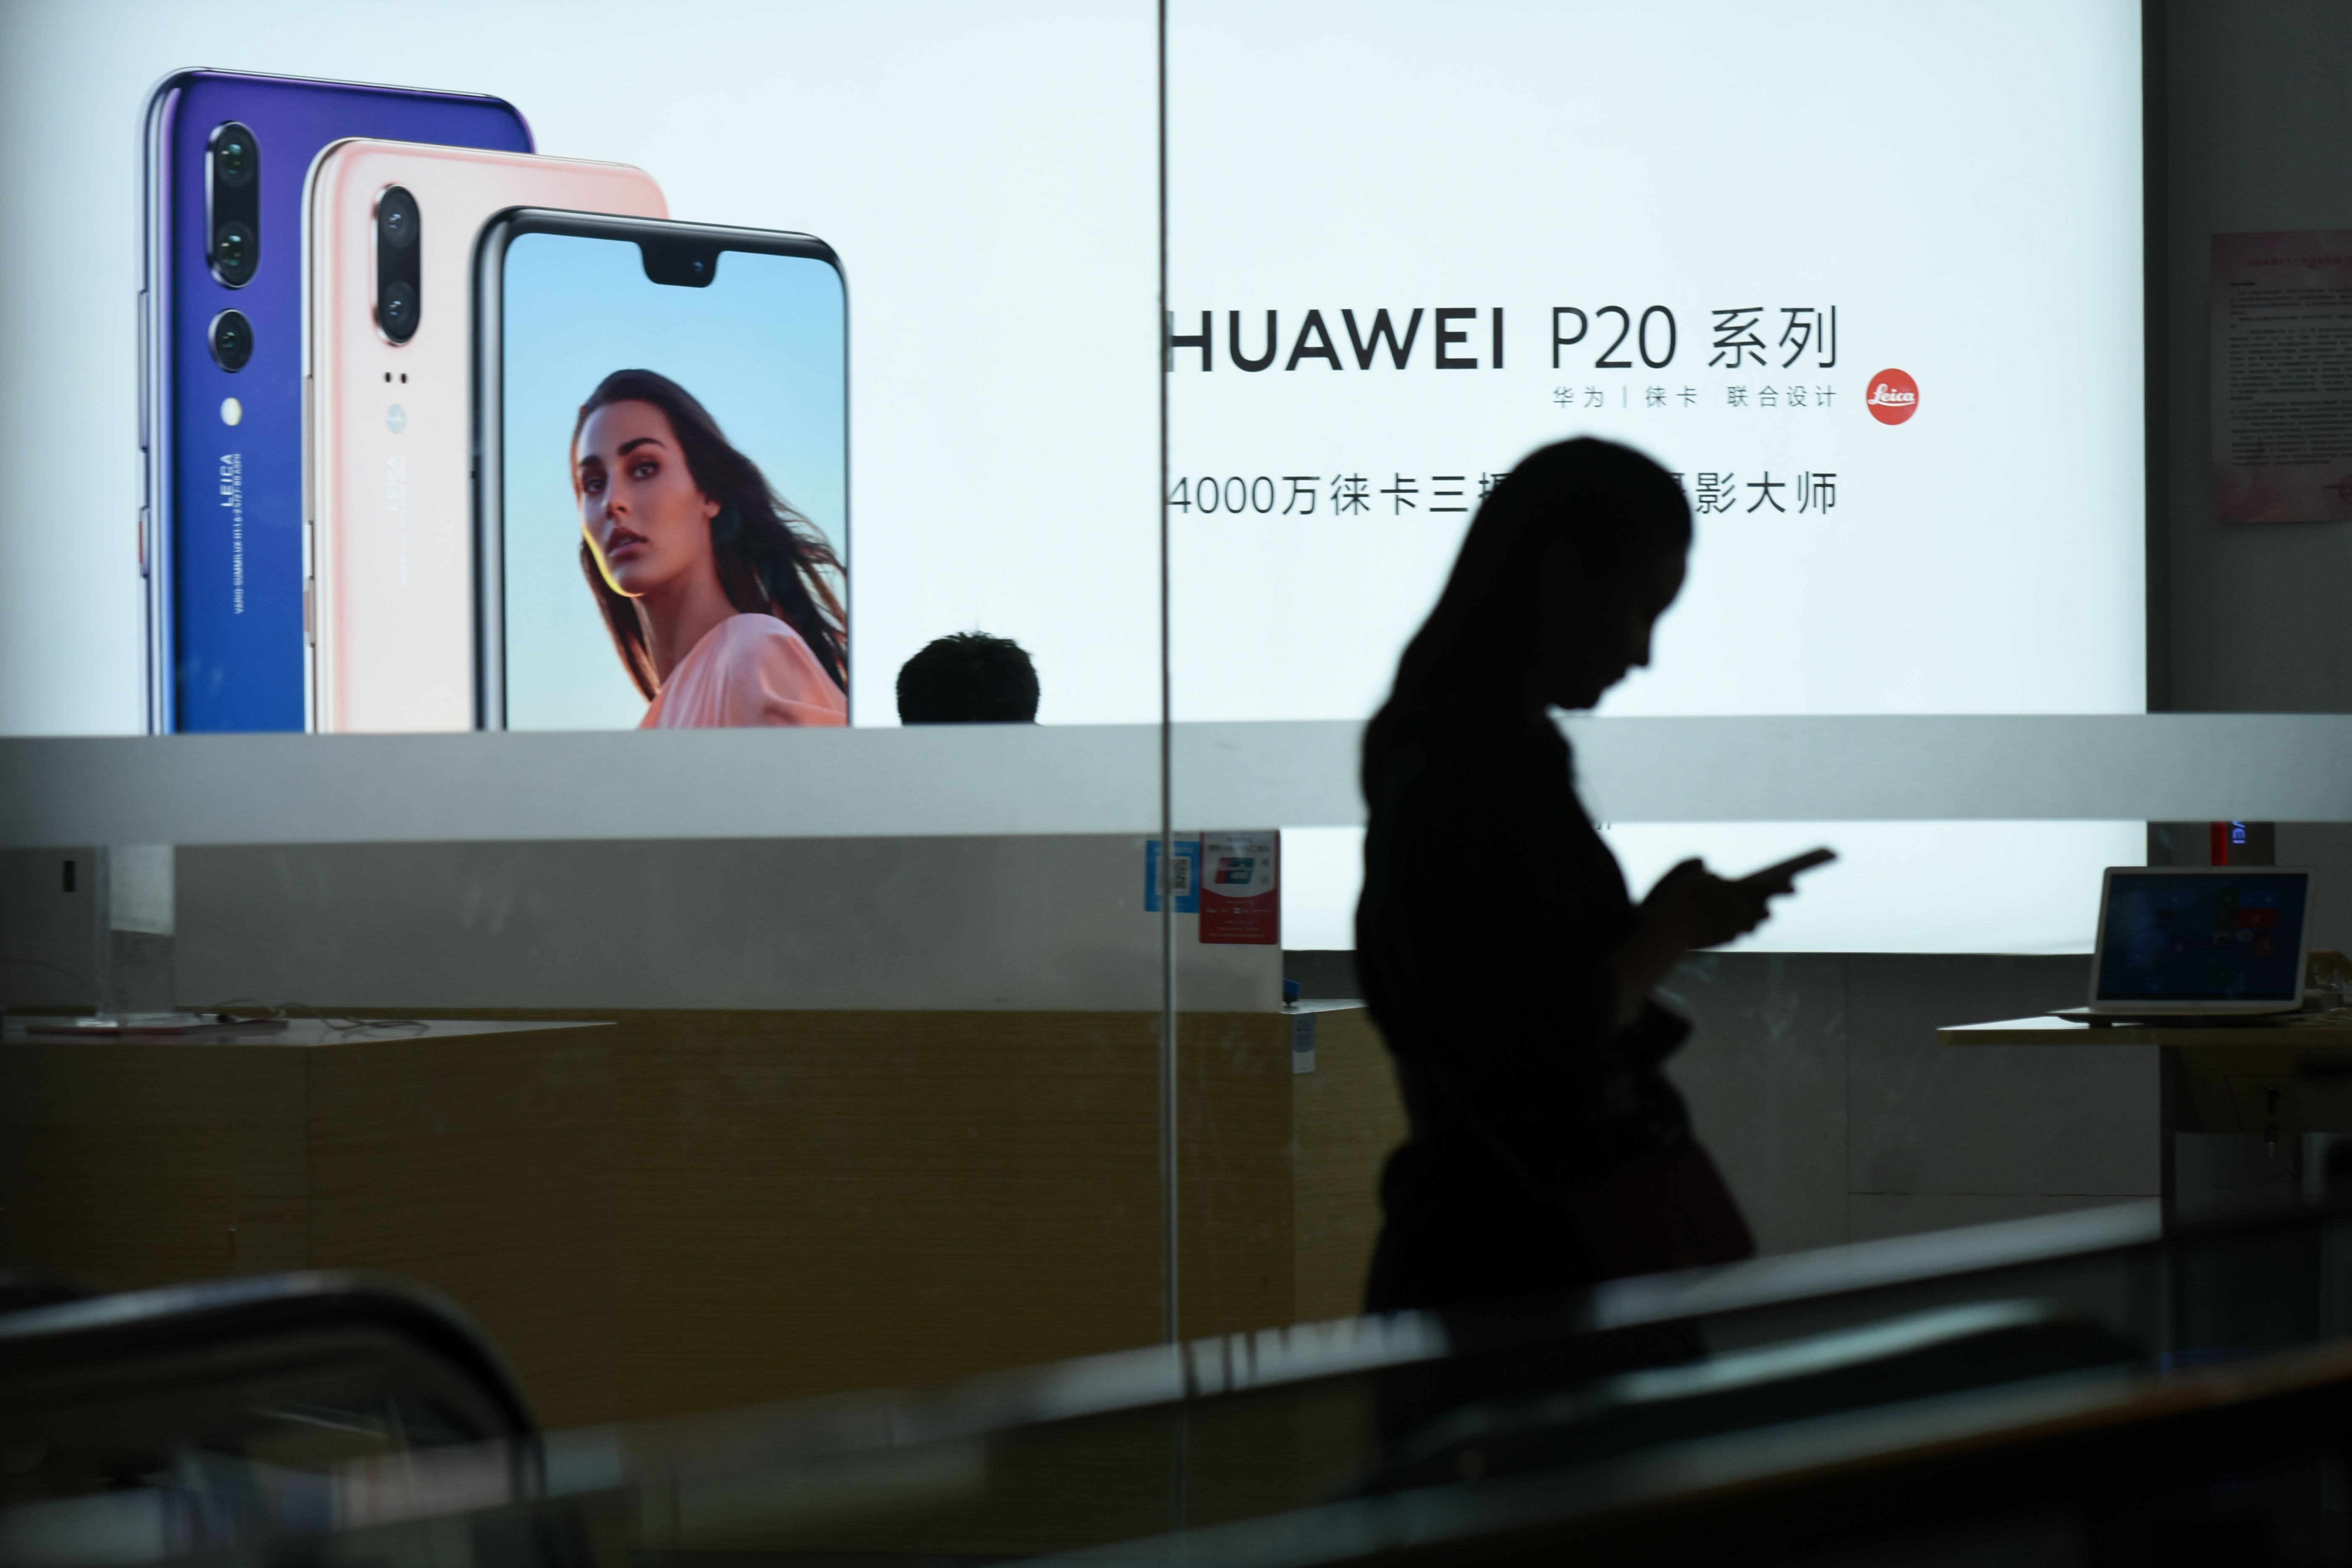 Samsung and Apple are losing ground to Huawei because their phones are too expensive